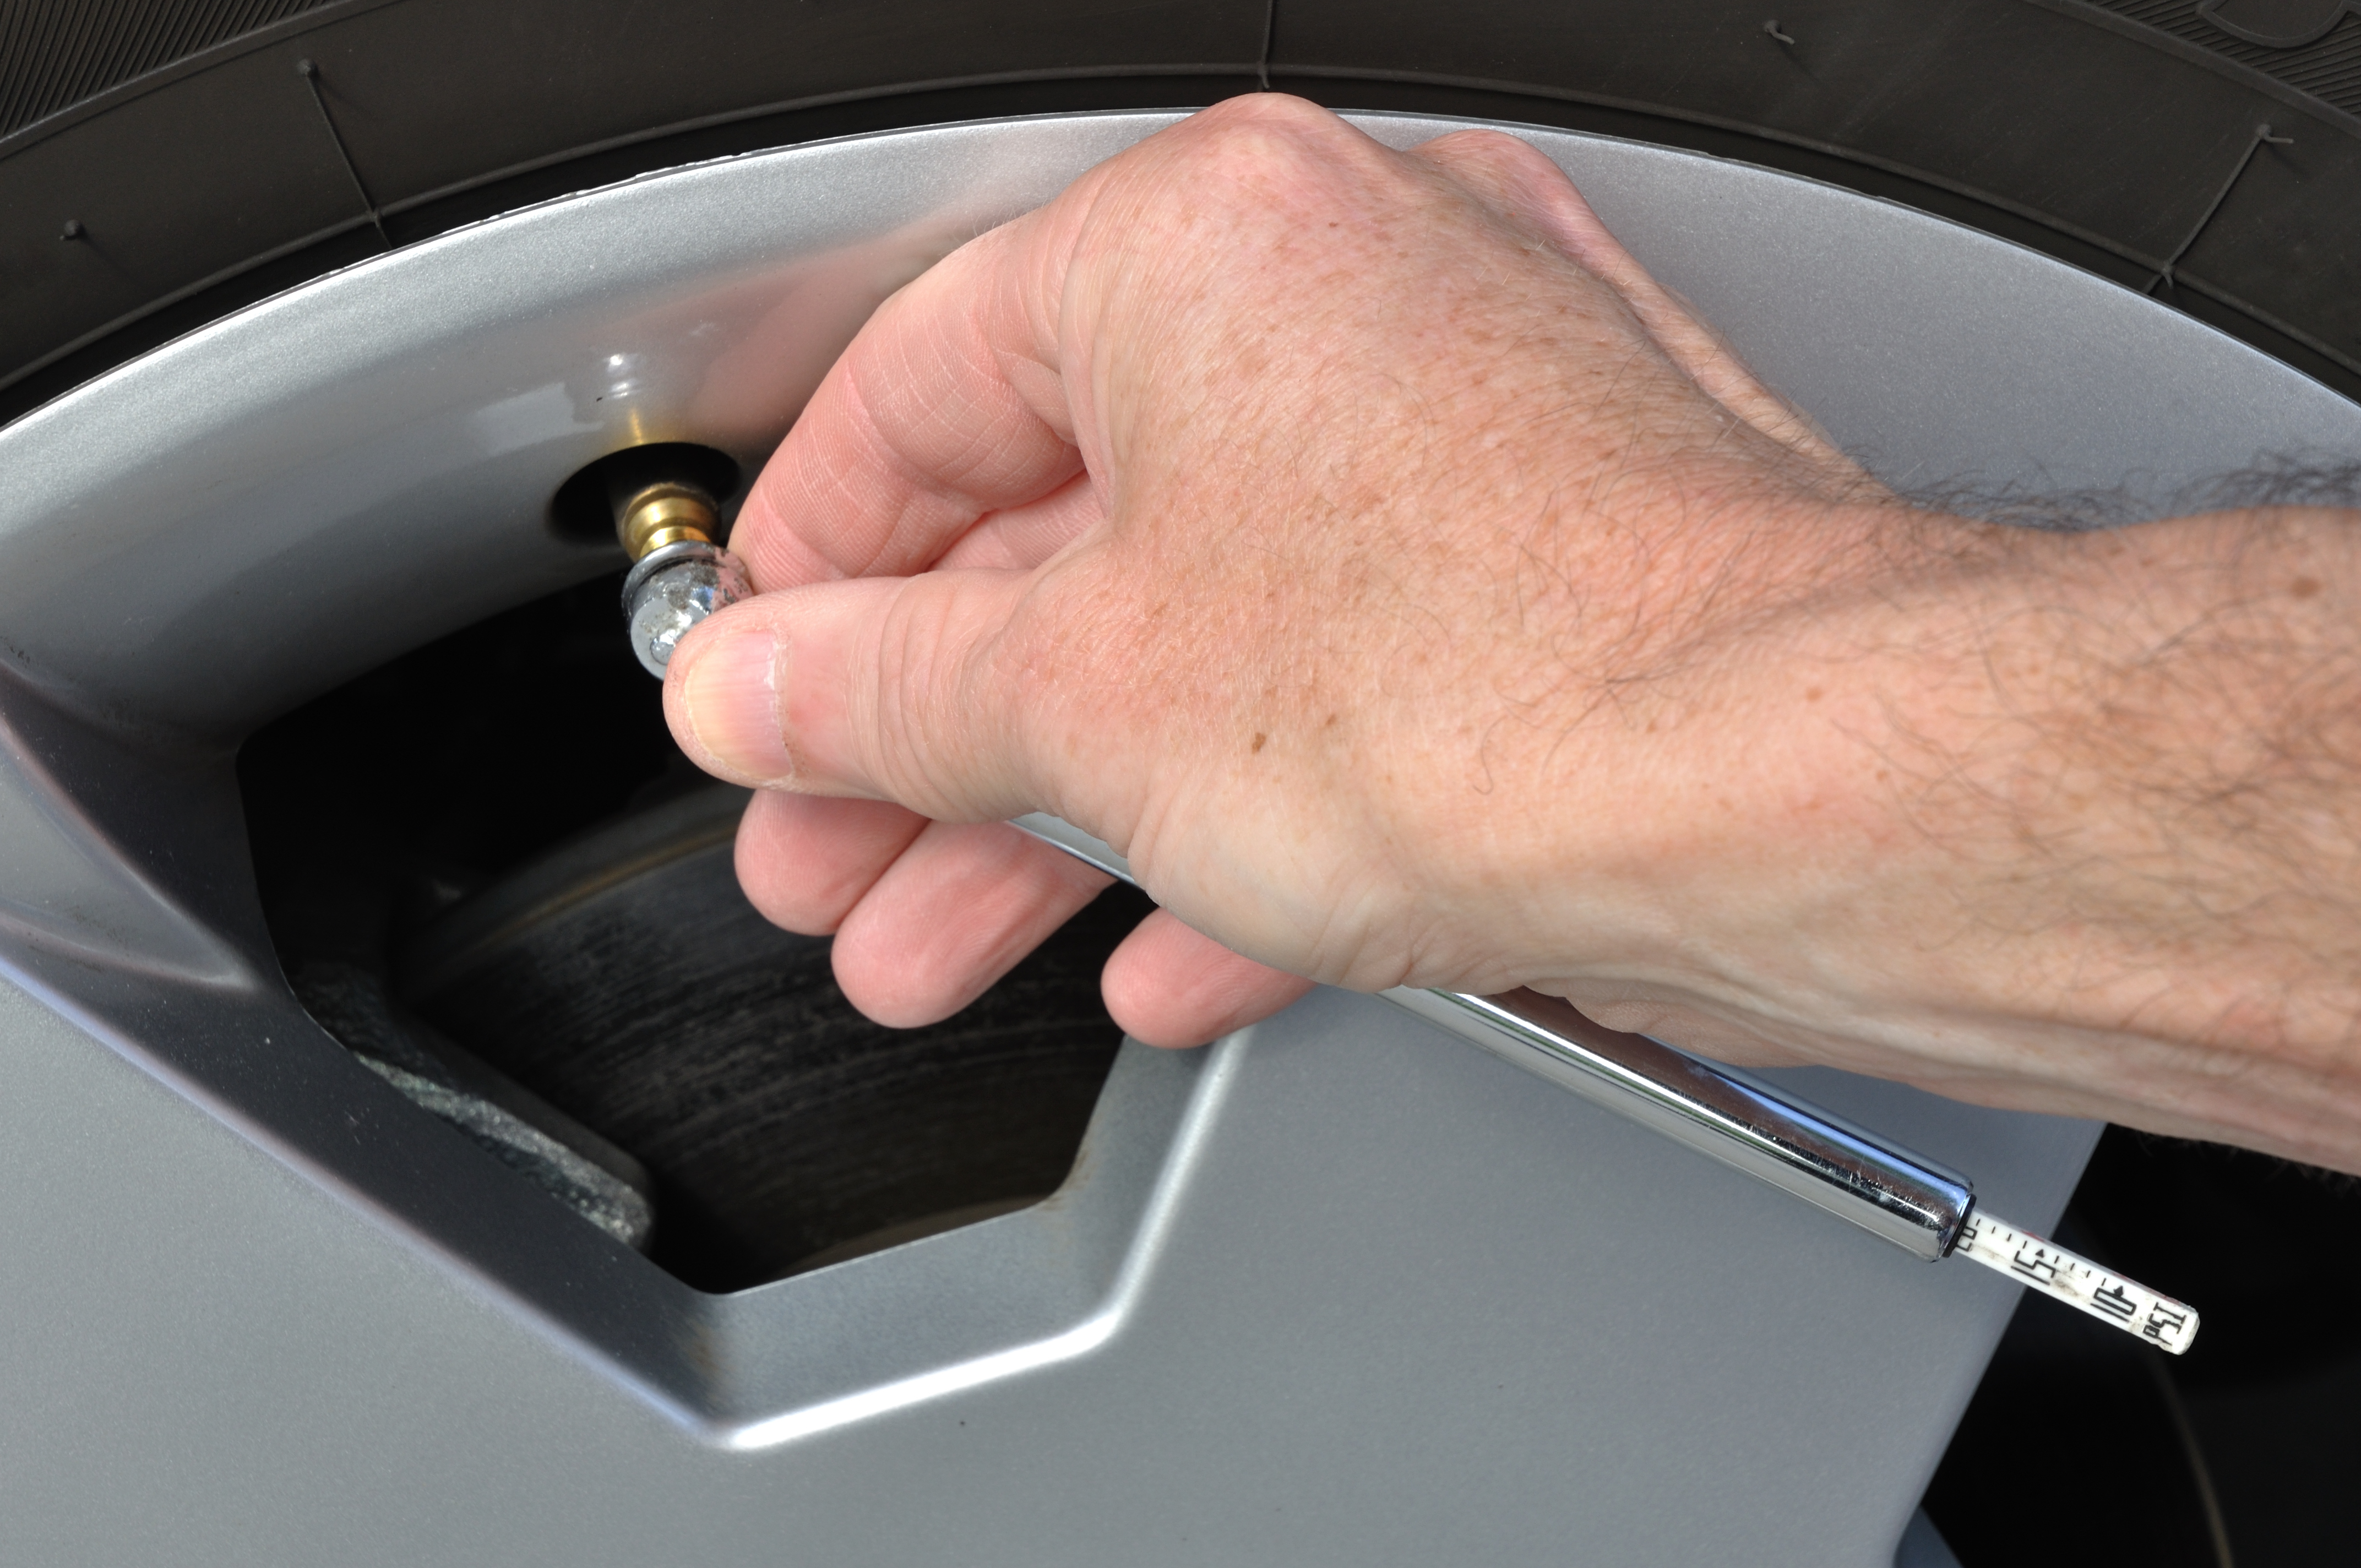 Checking Tire Pressure With a Tire Pressure Gauge